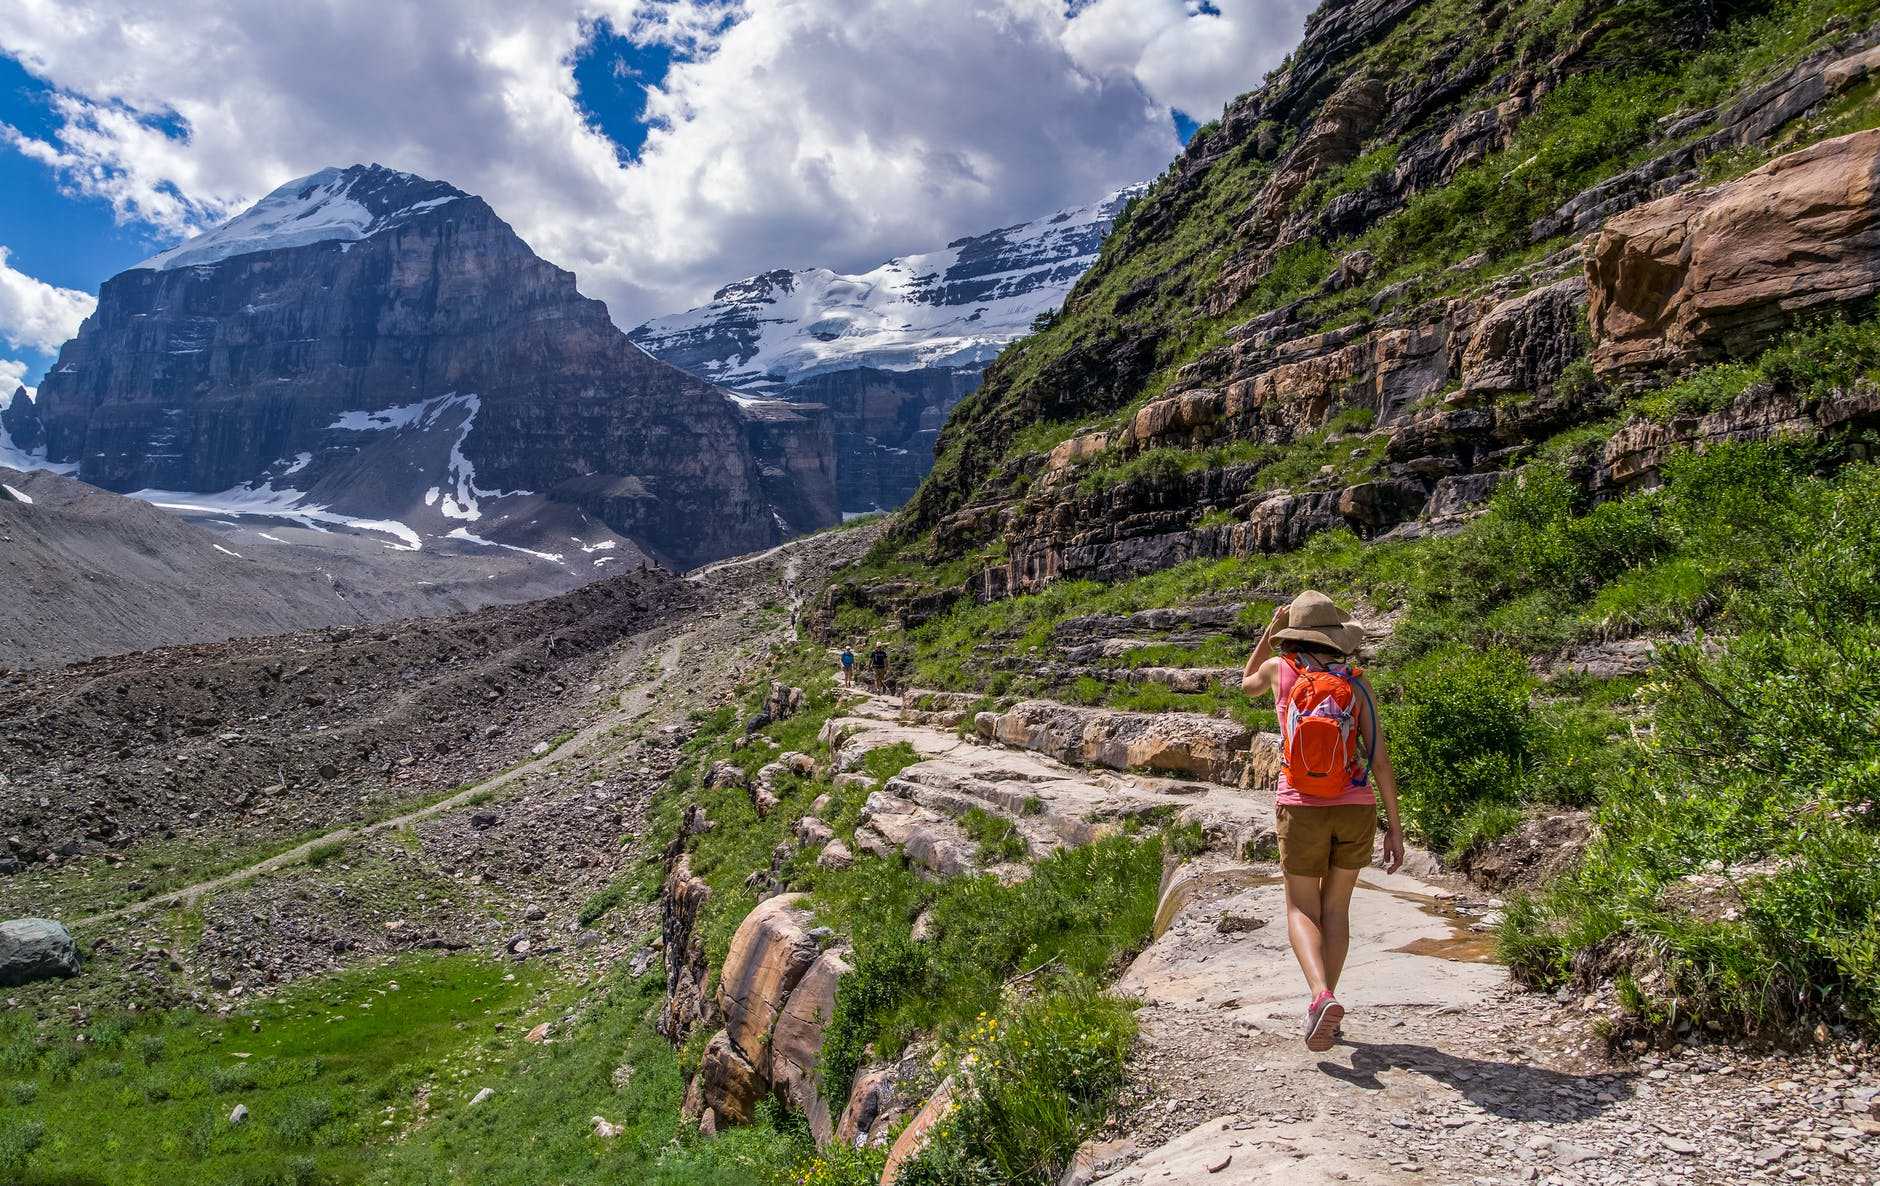 A person walking along a path in the mountains - get tips for adventure travel for women from Wanderful